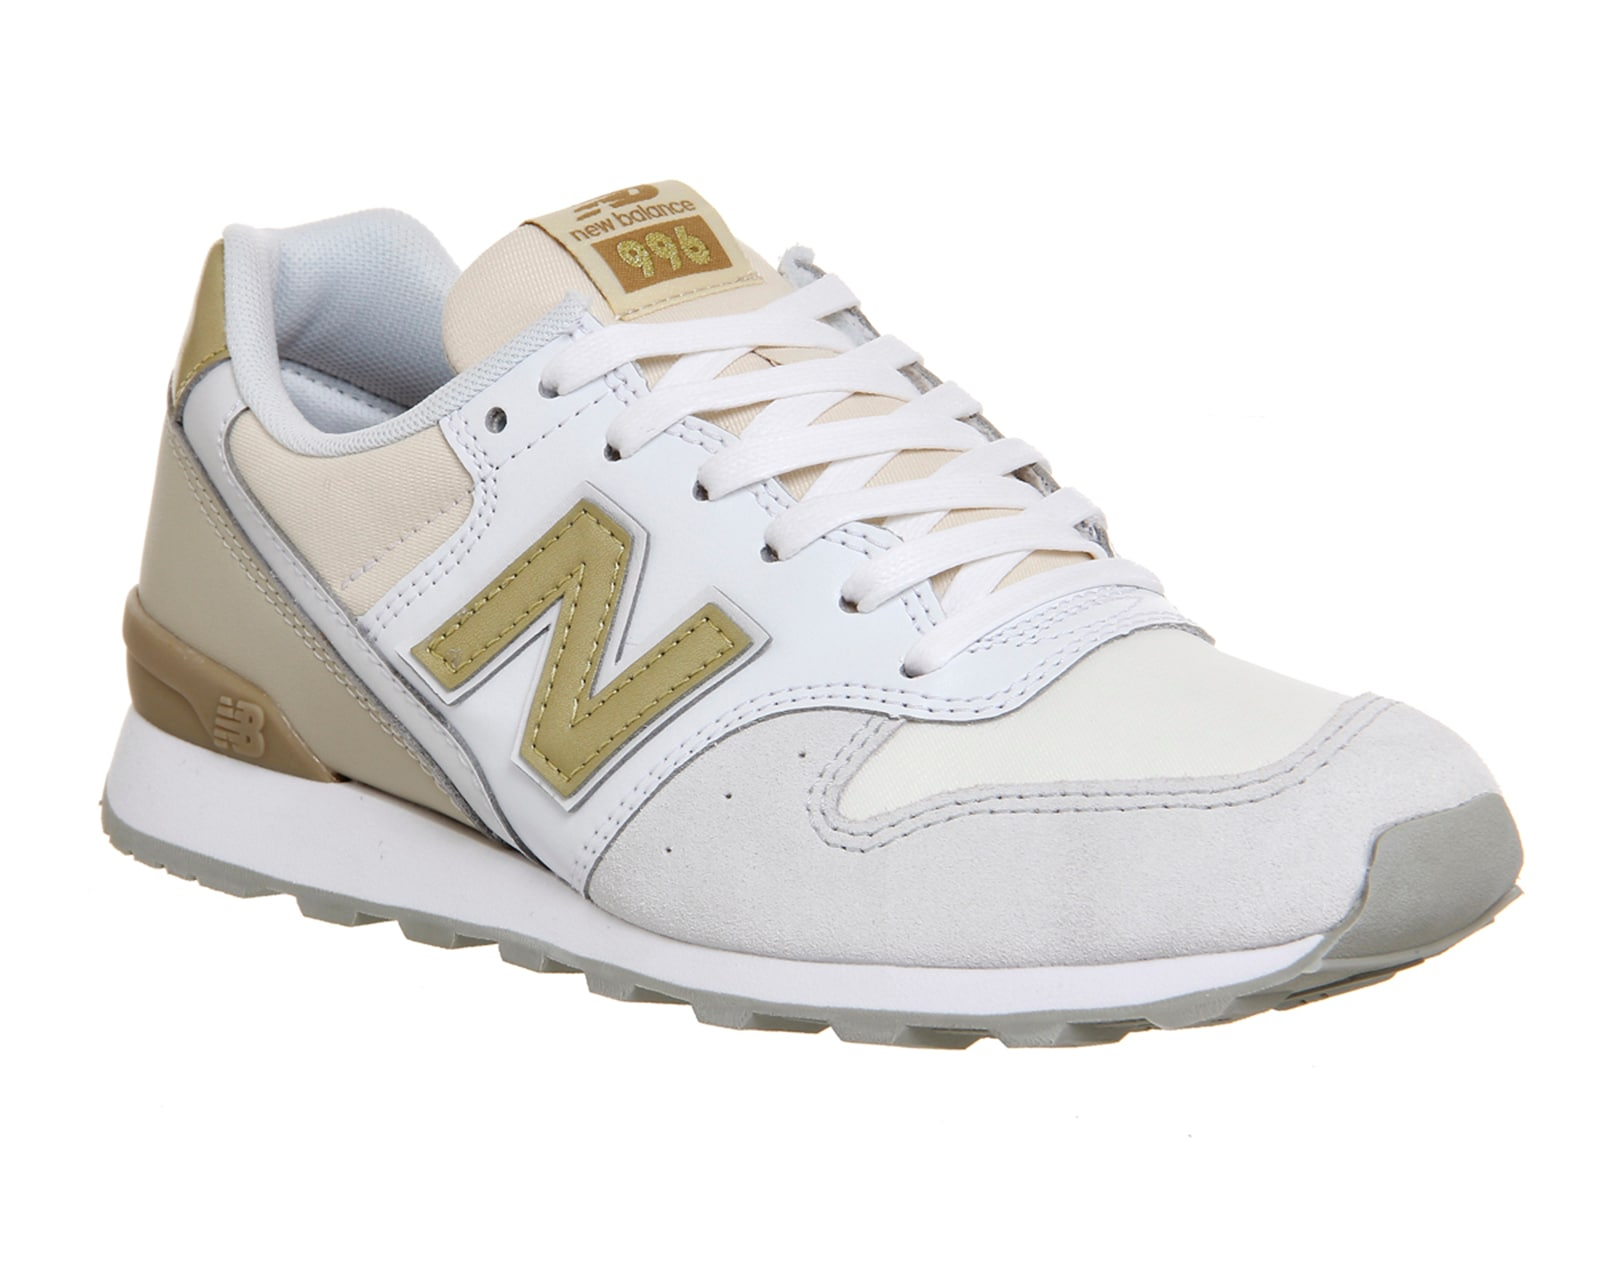 new balance 996 white gold trainers shoes ebay. Black Bedroom Furniture Sets. Home Design Ideas